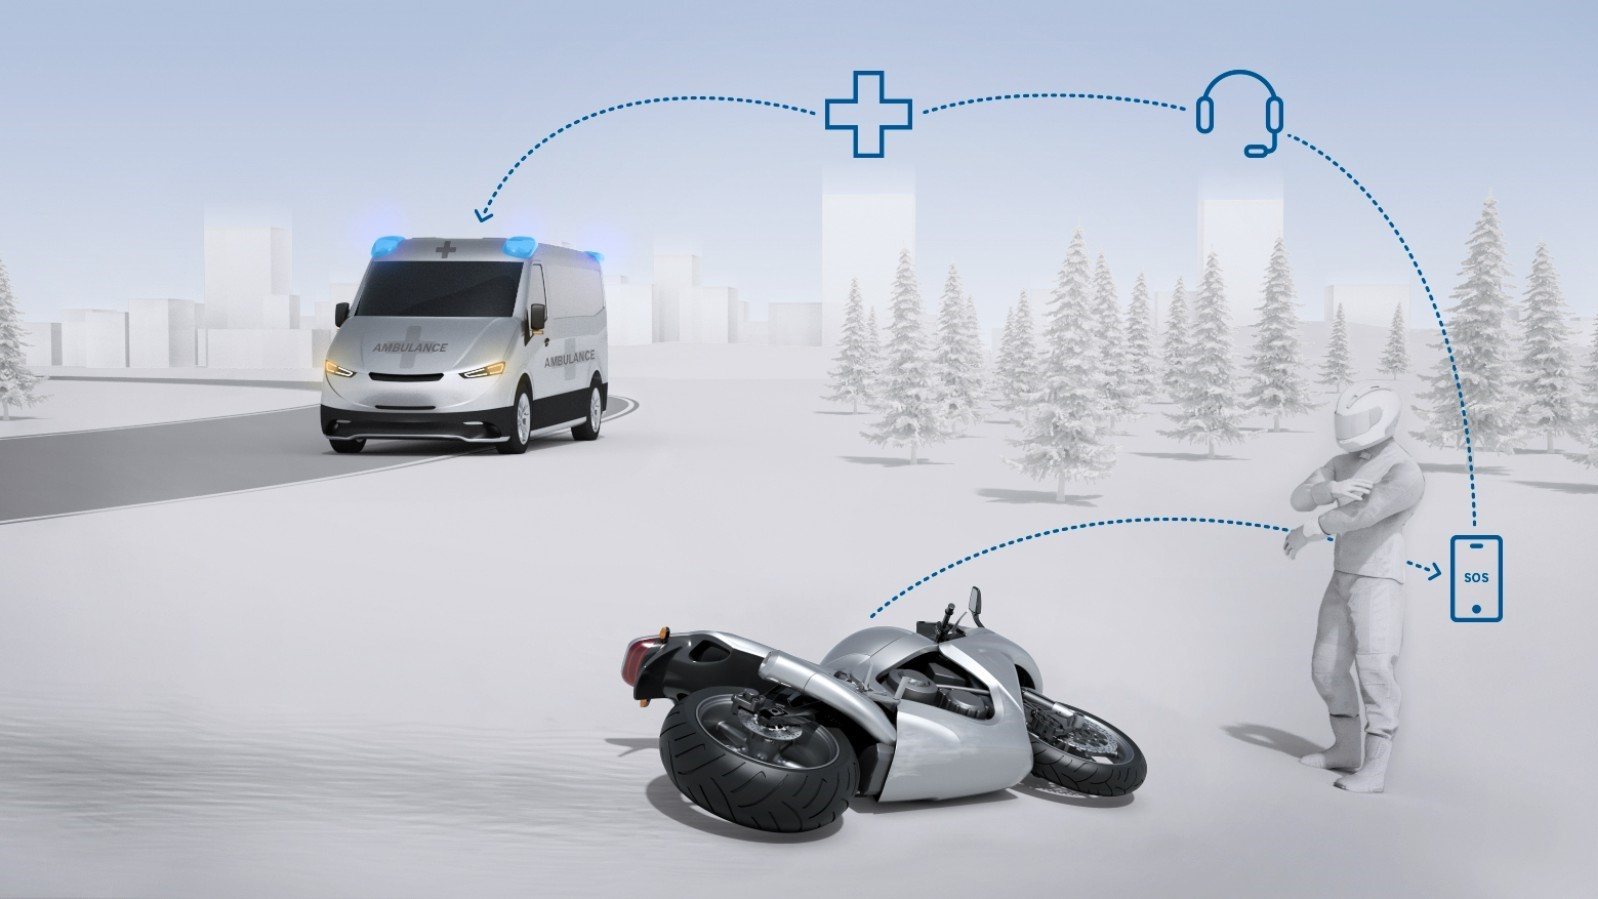 bosch help connect motorcycle safety